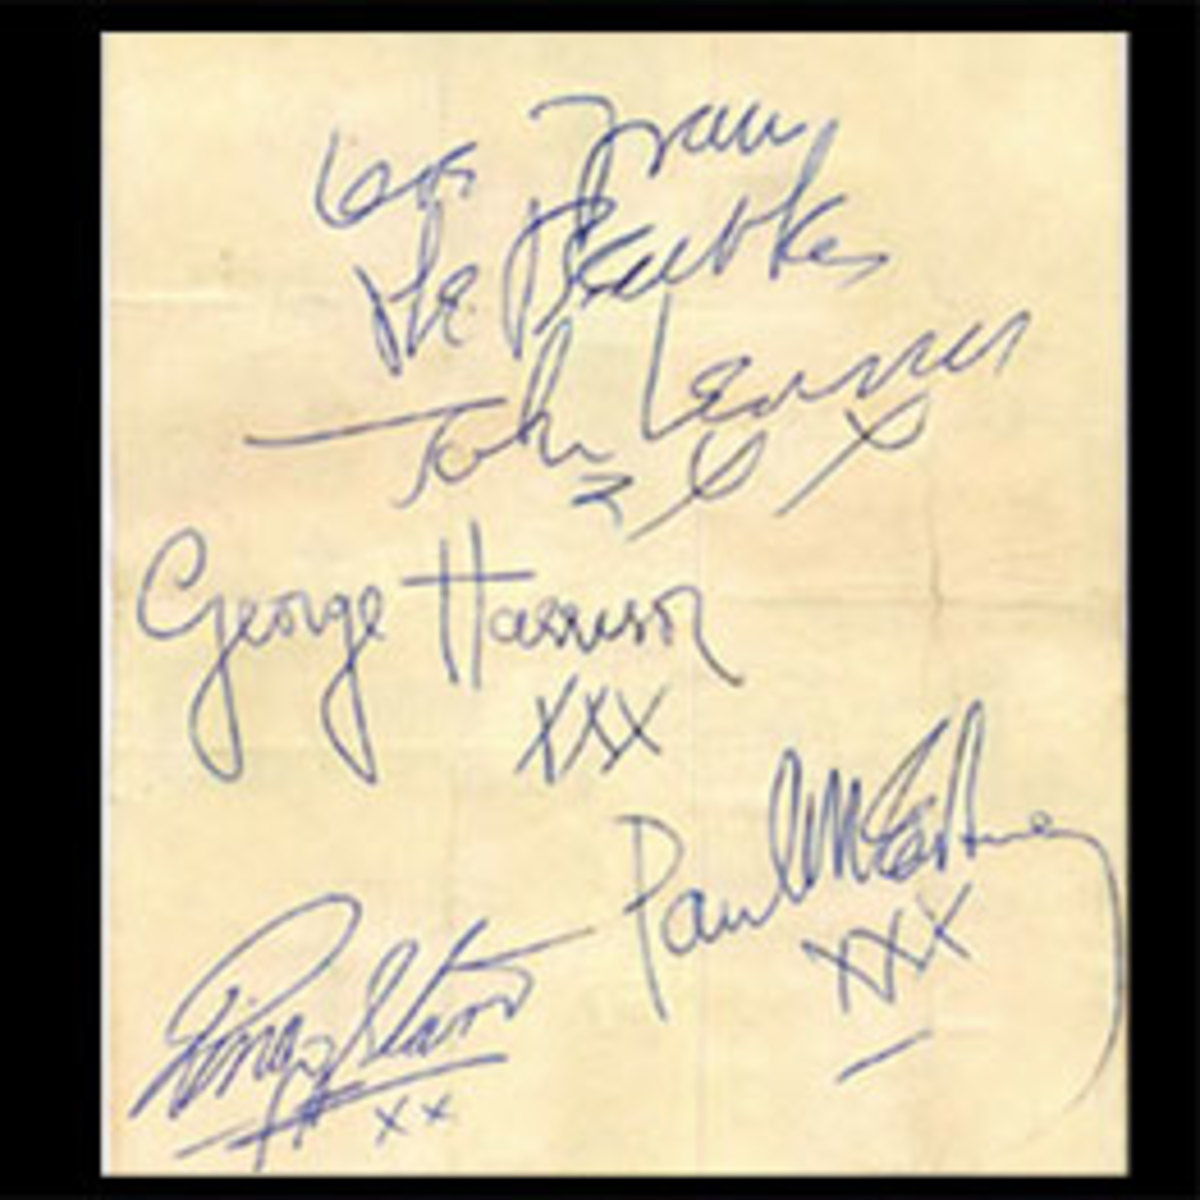 Stained and folded document with all four autographs from the Beatles after restoration